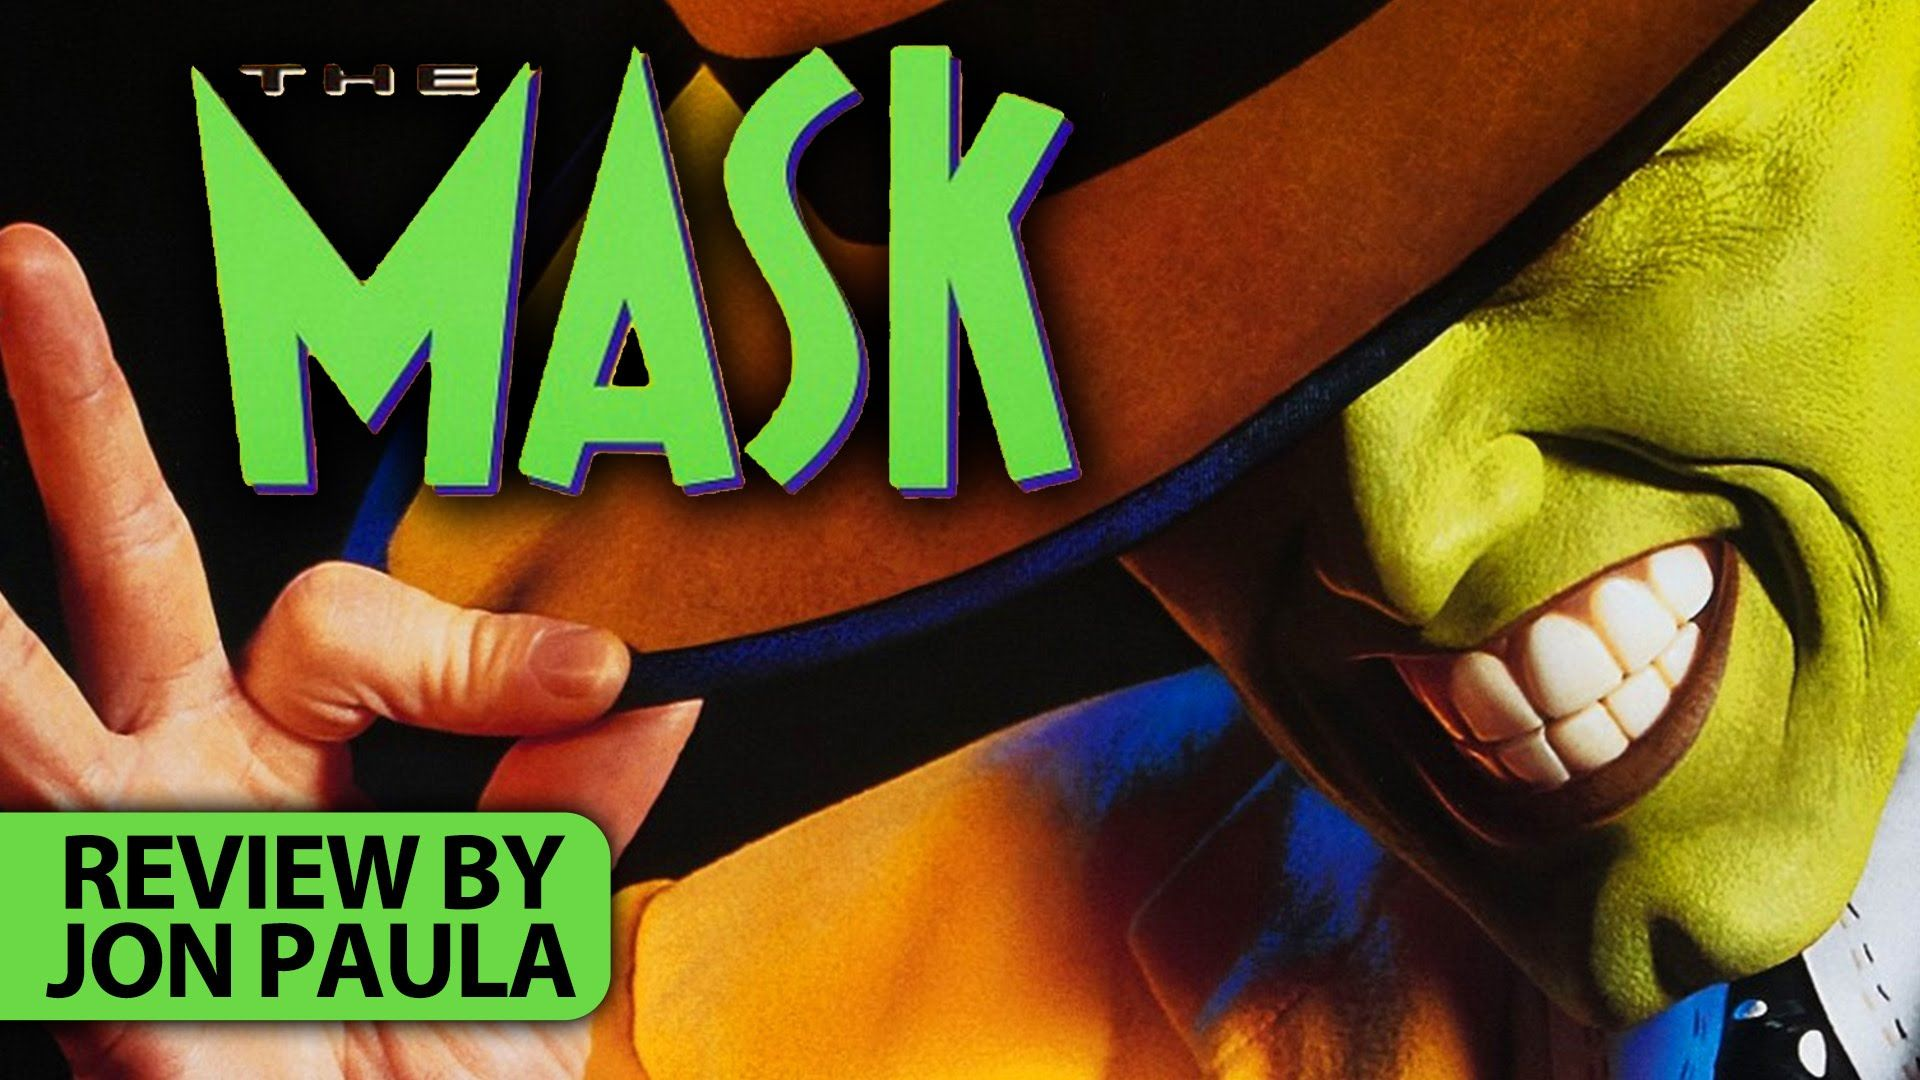 The Mask Hd Wallpapers Backgrounds Wallpaper 1200 960 The Mask Movie Wallpapers 37 Wallpapers Adorable Wallpapers Movie Wallpapers Mask Movies